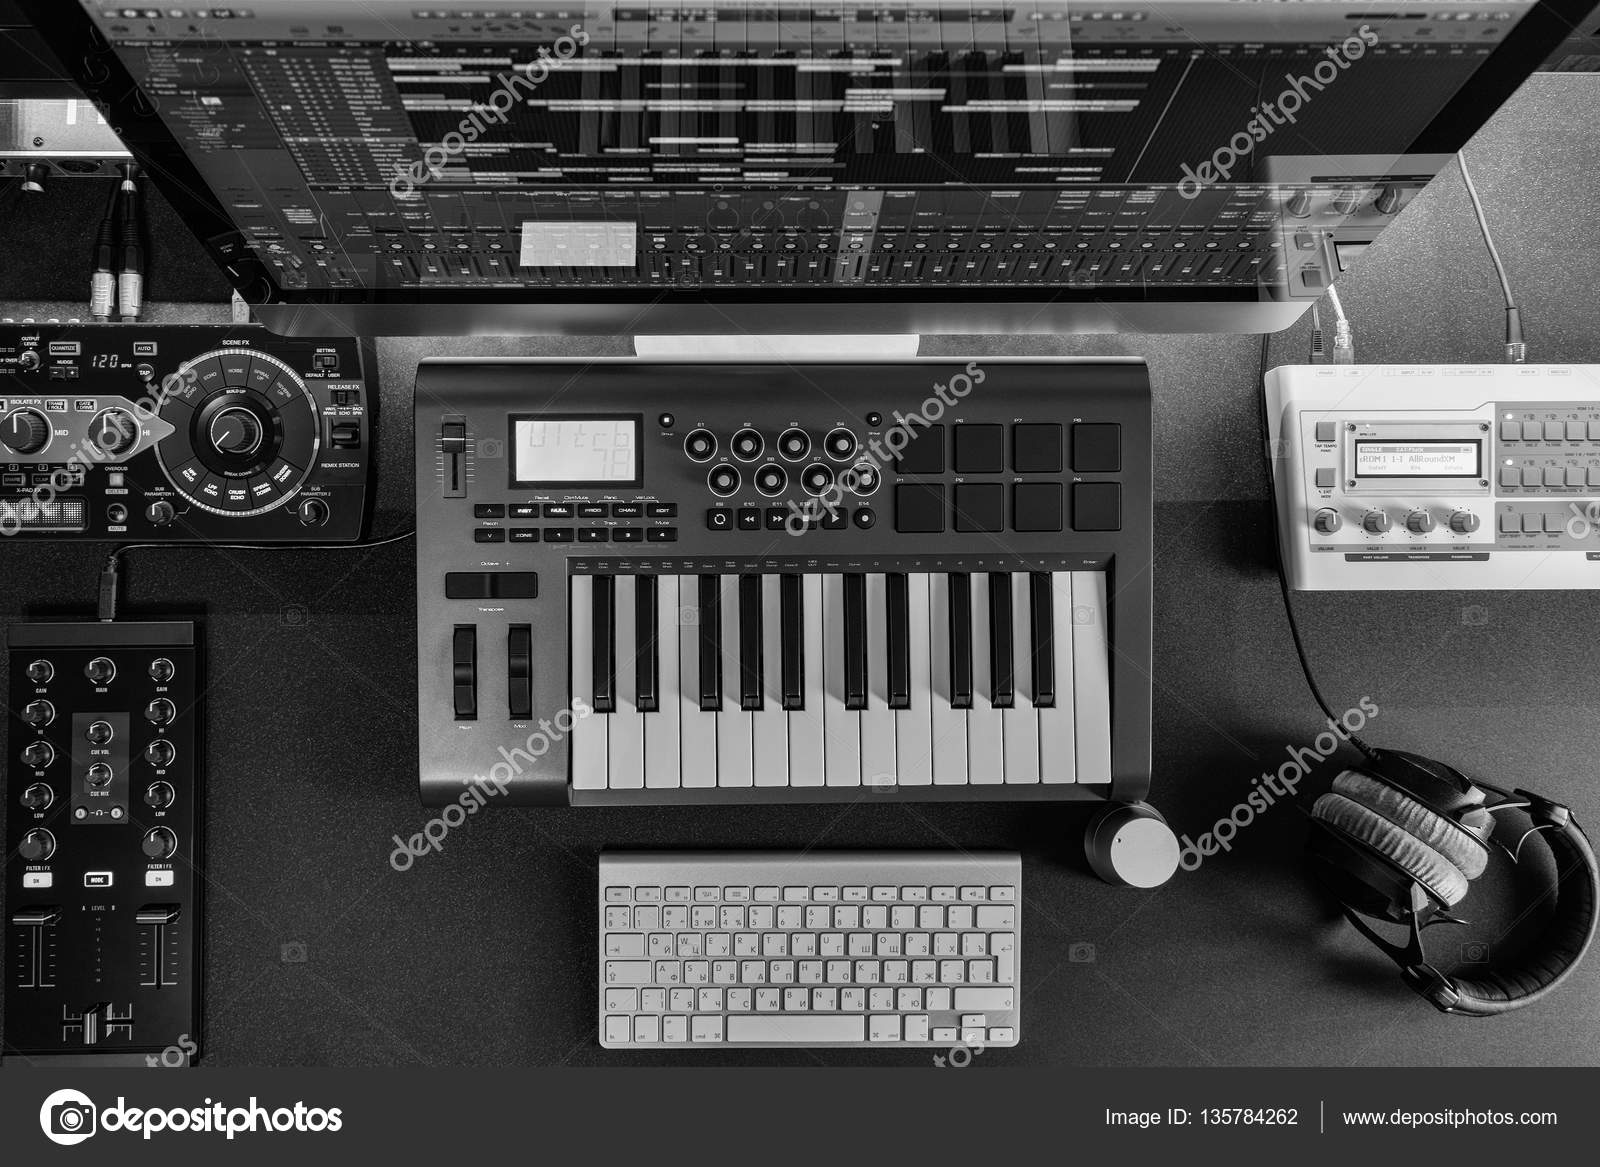 Flat Lay Home Music Studio Dj And Producer Equipment On The Black Table White Monochrome Image Photo By Drablenkov